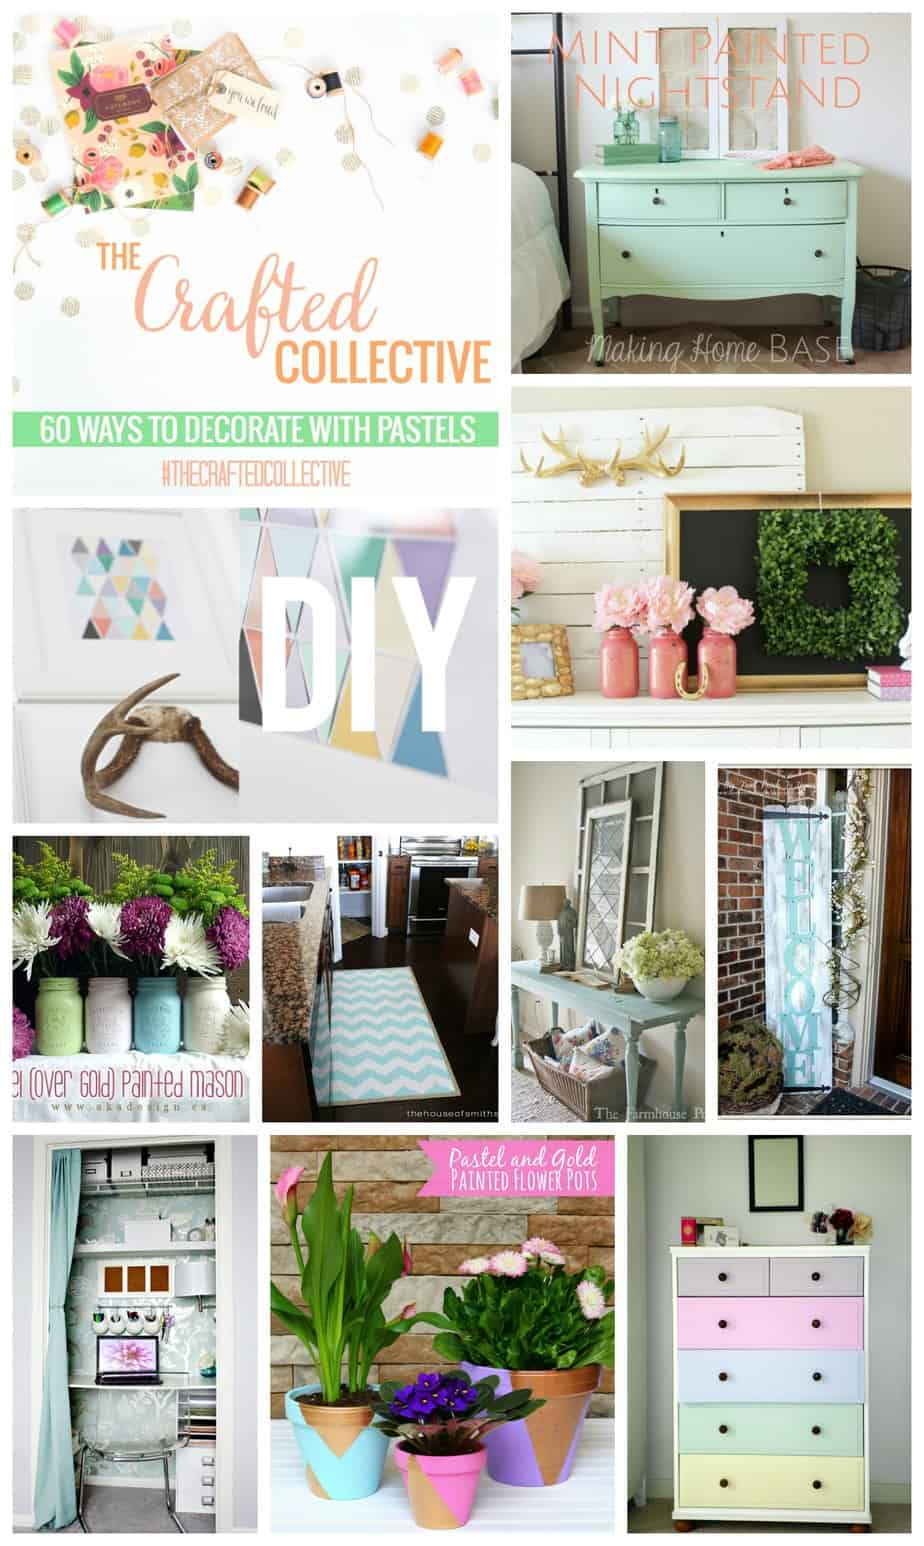 The Crafted Collective - Decorating with Pastels